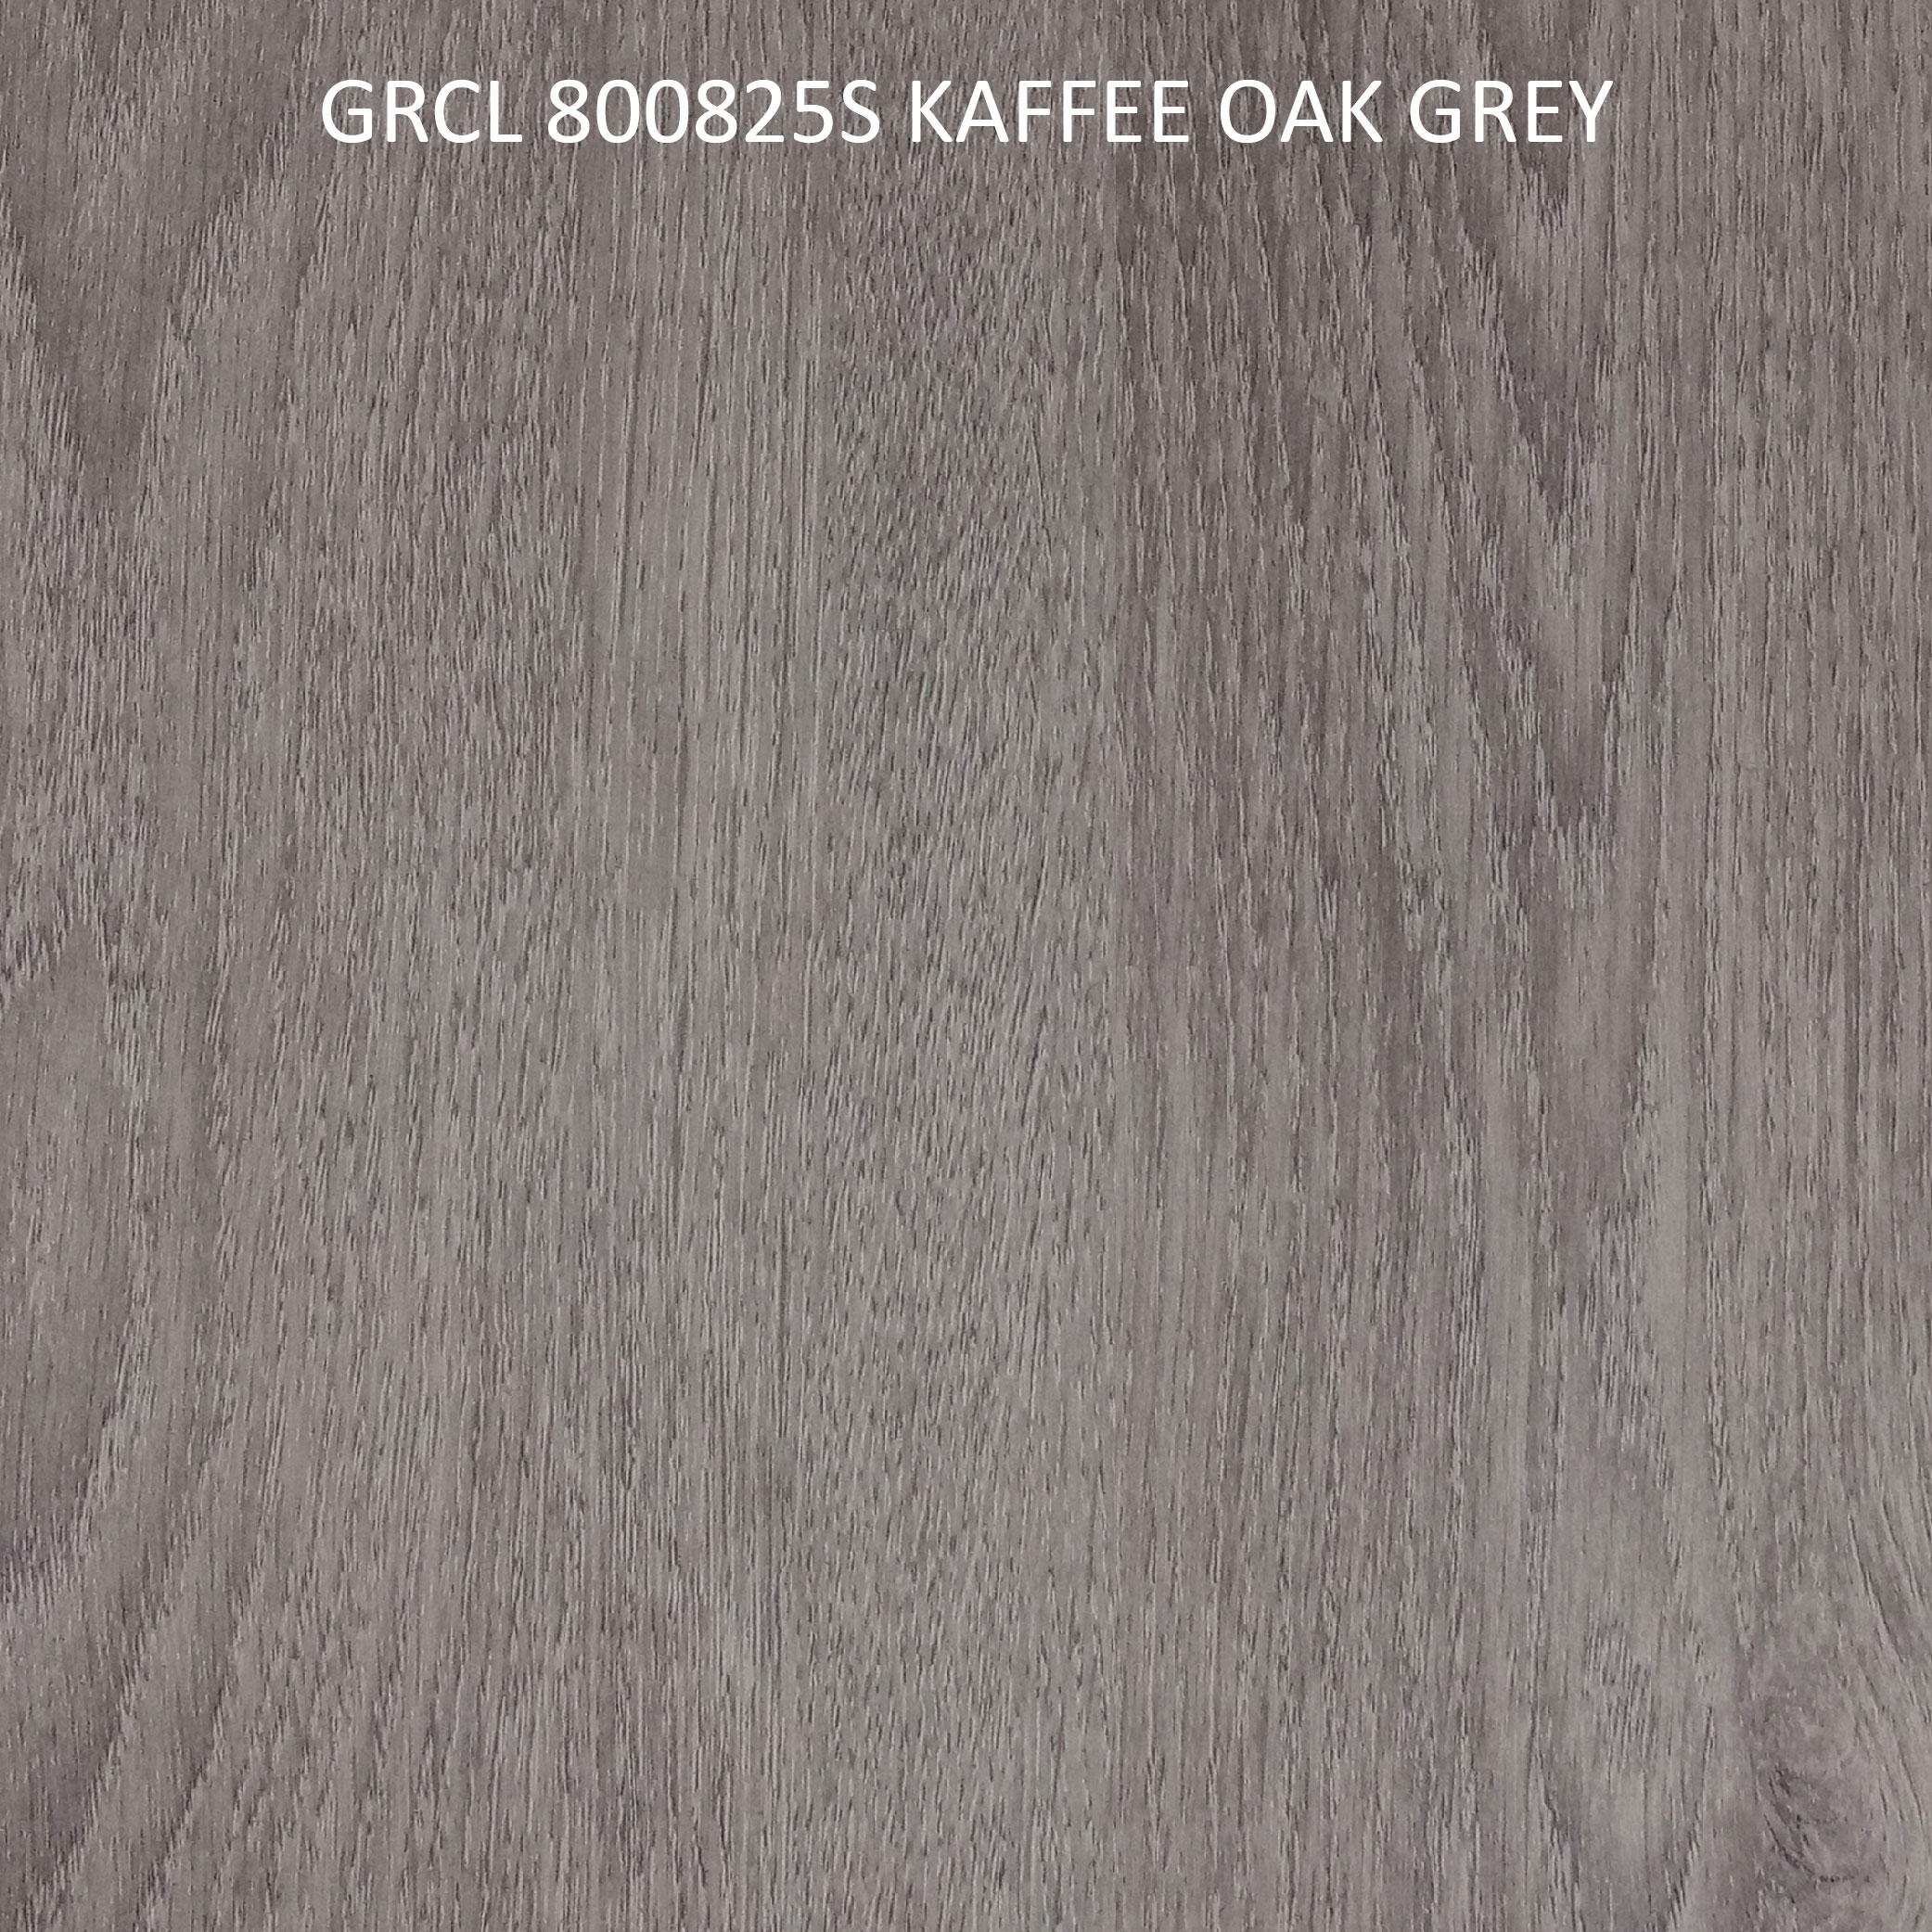 GRCL 800825S KAFFEE OAK GREY